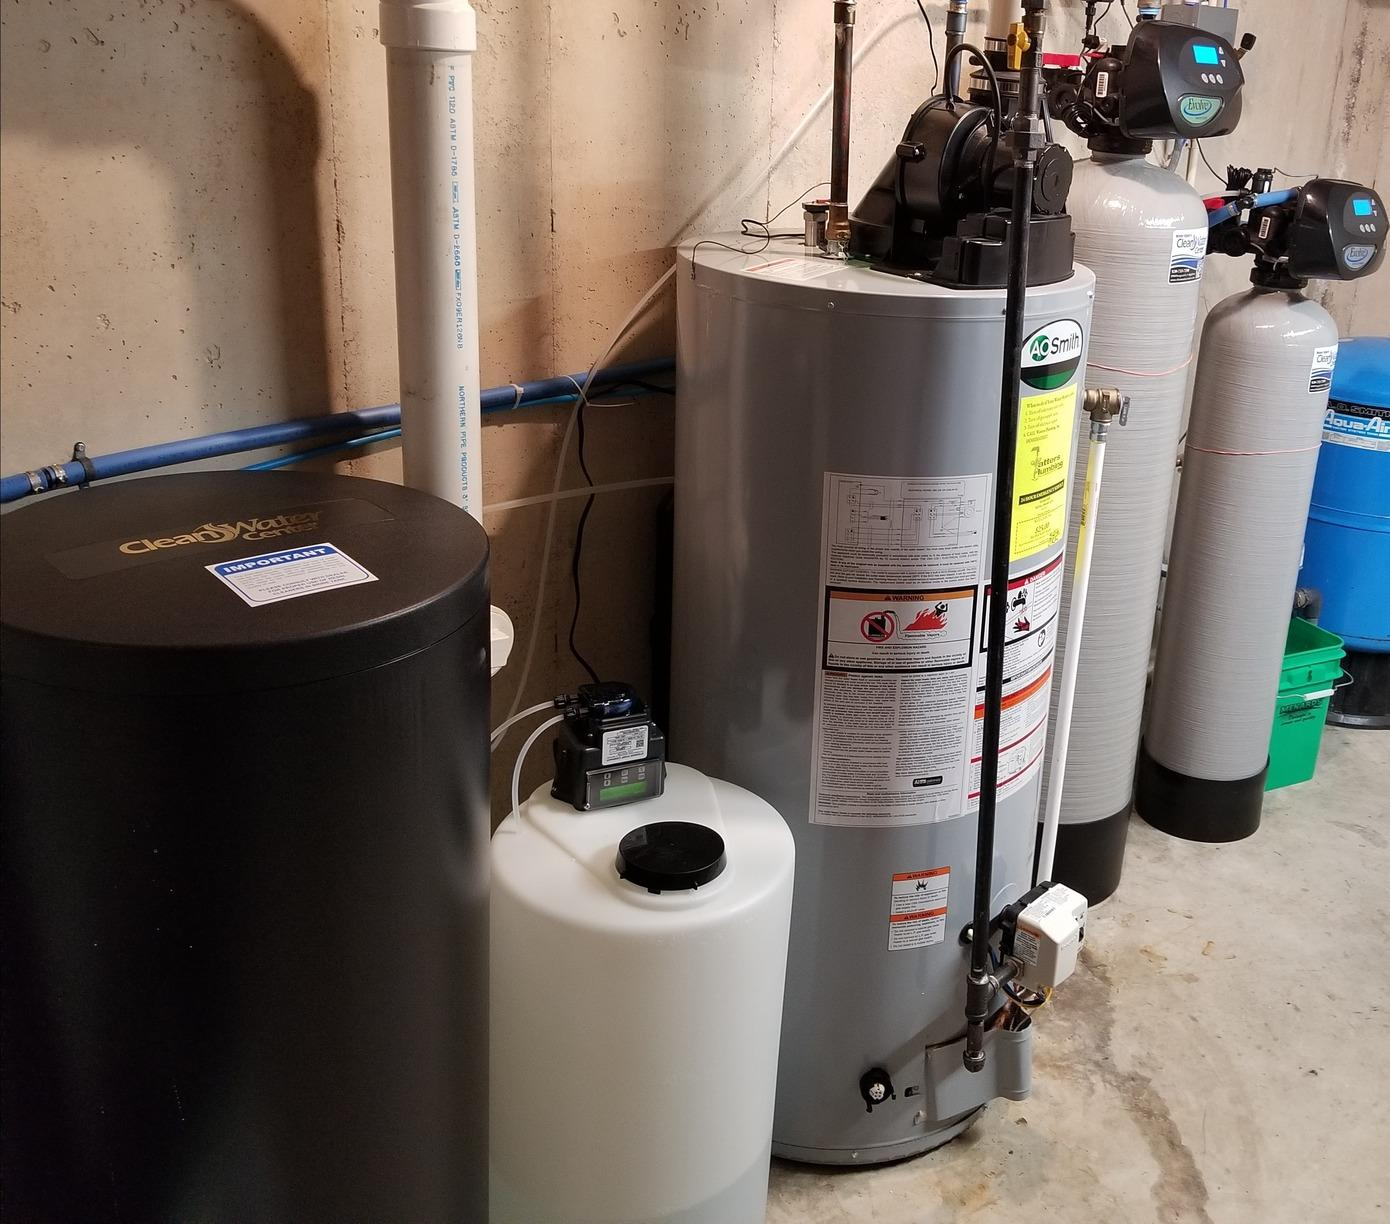 Bad Odor to Water - Hilbert, WI - After Photo